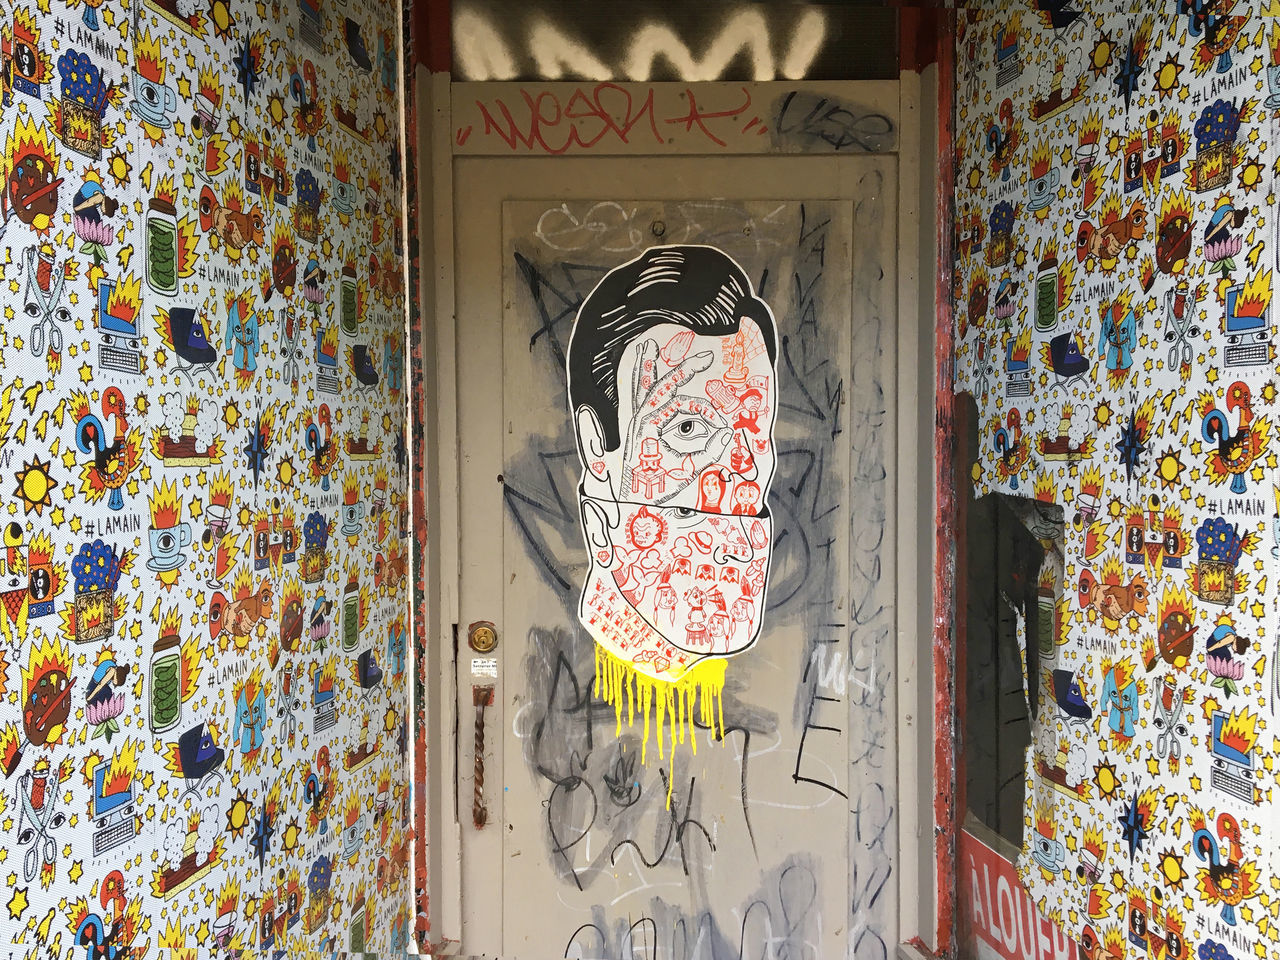 Abandoned Architecture Boulevard St Laurent Built Structure Close-up Closed Day Decals Decoration Design Door Graffiti Graffiti Art La Main Montréal Multi Colored My Neighborhood No People Ornate Plateau-Mont-Royal Store Front Streetart Streetphotography Wood - Material